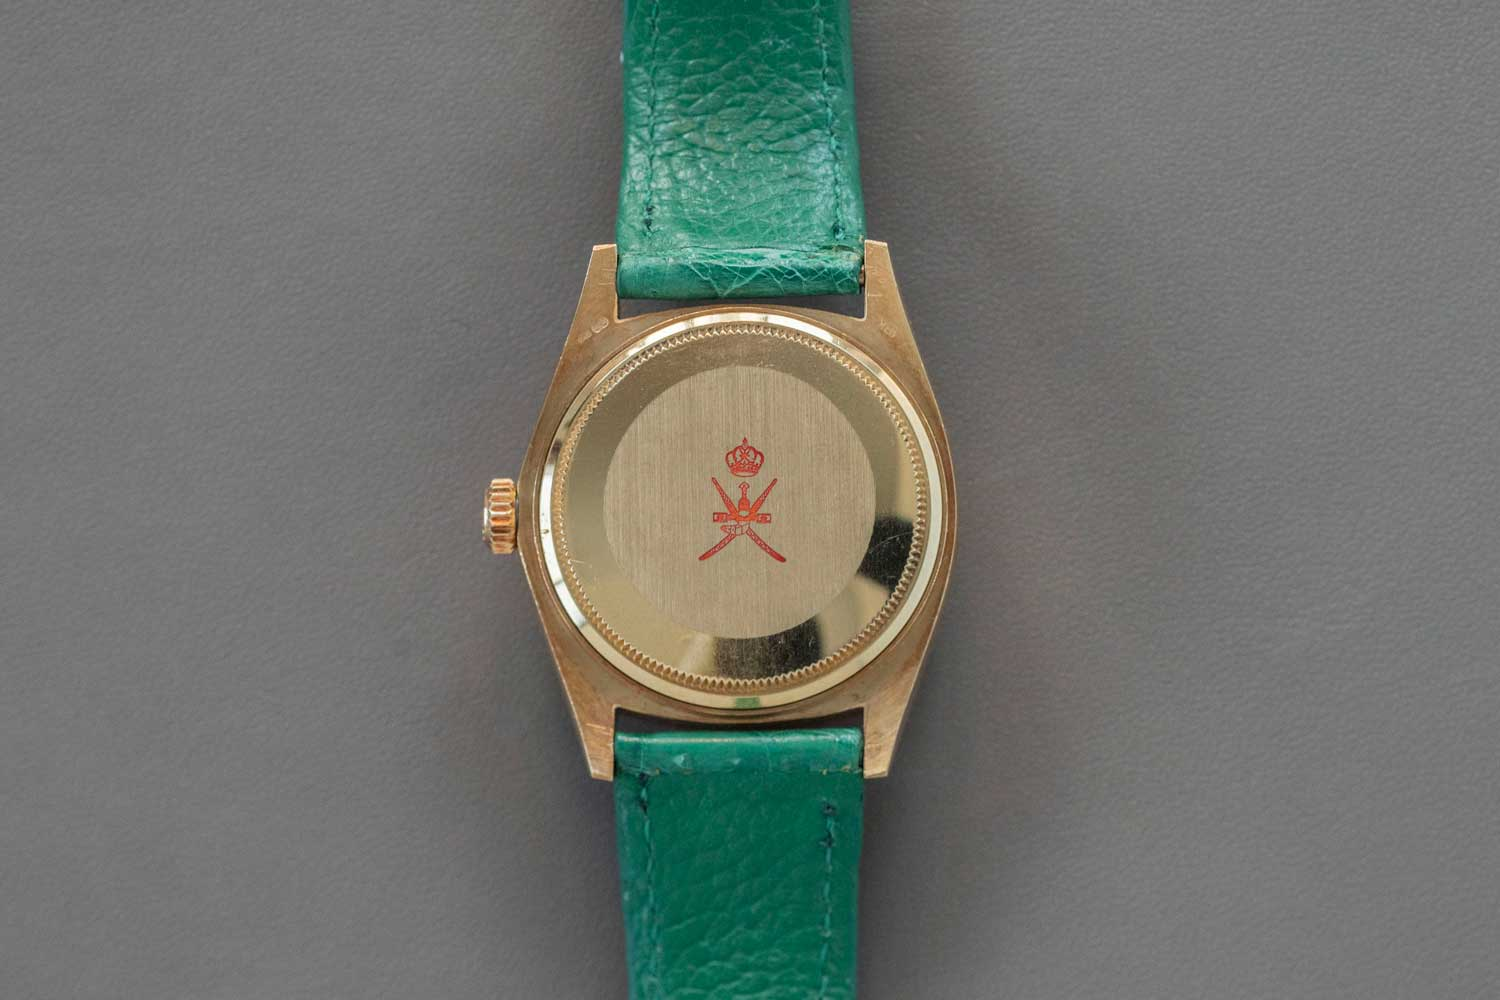 Super rare turquoise Rolex Stella Khanjar ref. 18078 (circa 1980); note that the Khanjar stamp on the dial in this example is at an unusual 9 o'clock placement (©Revolution)